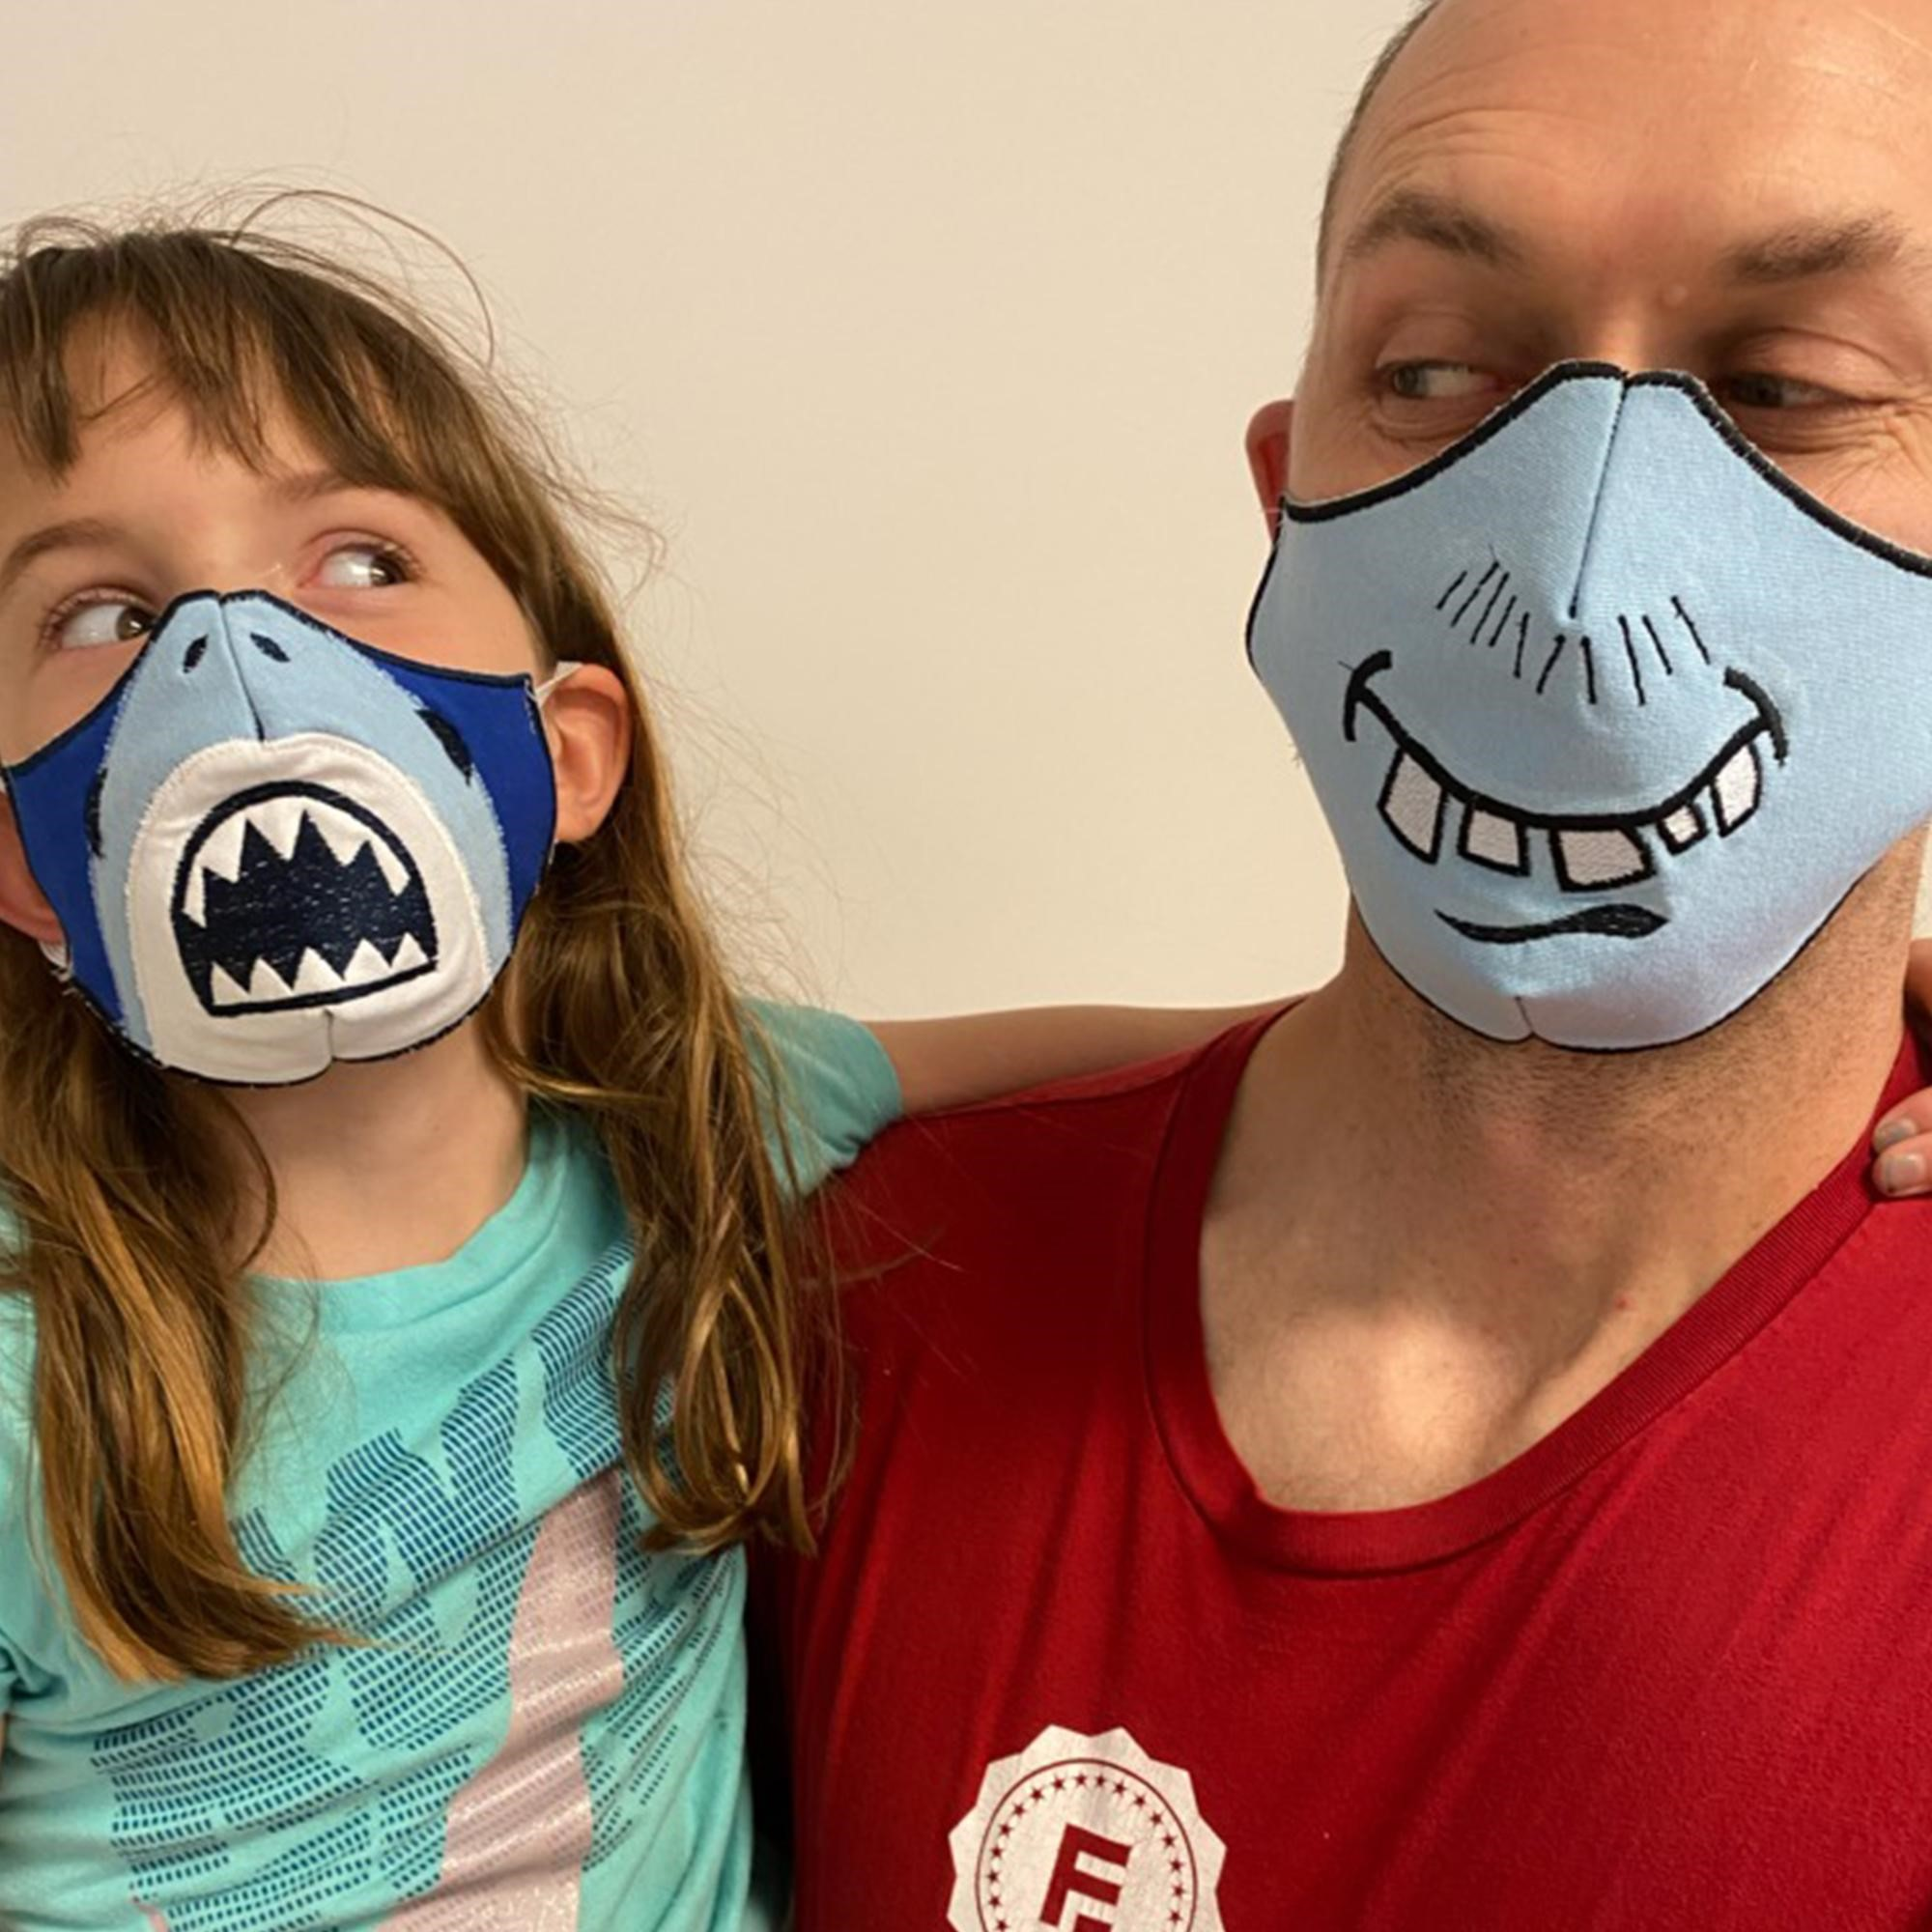 Super Power Face Mask Article Image 1